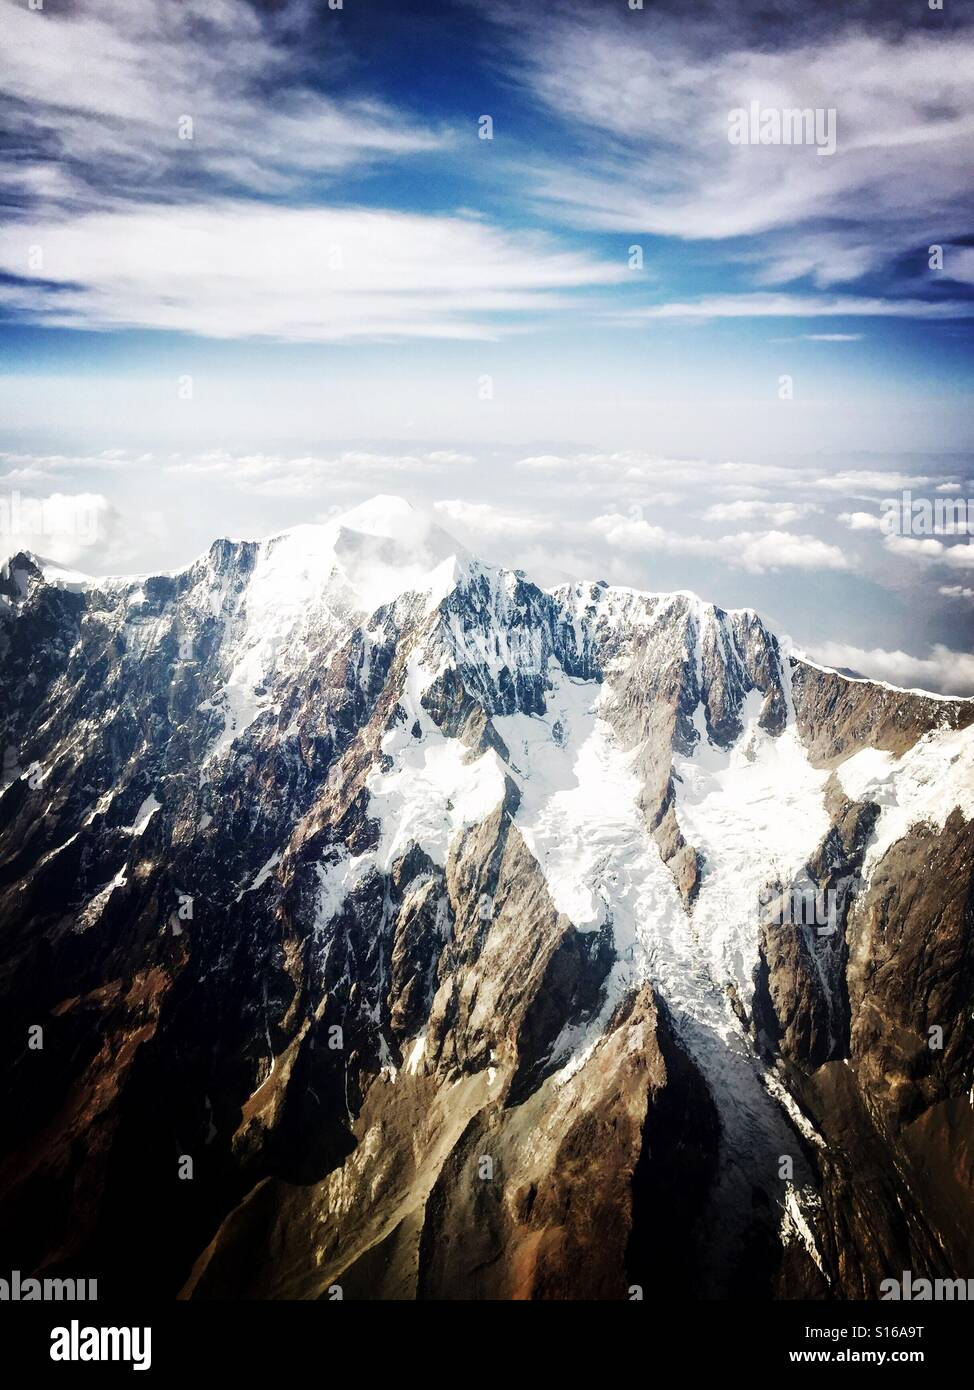 6k mountain peak surrounded by clouds - Stock Image